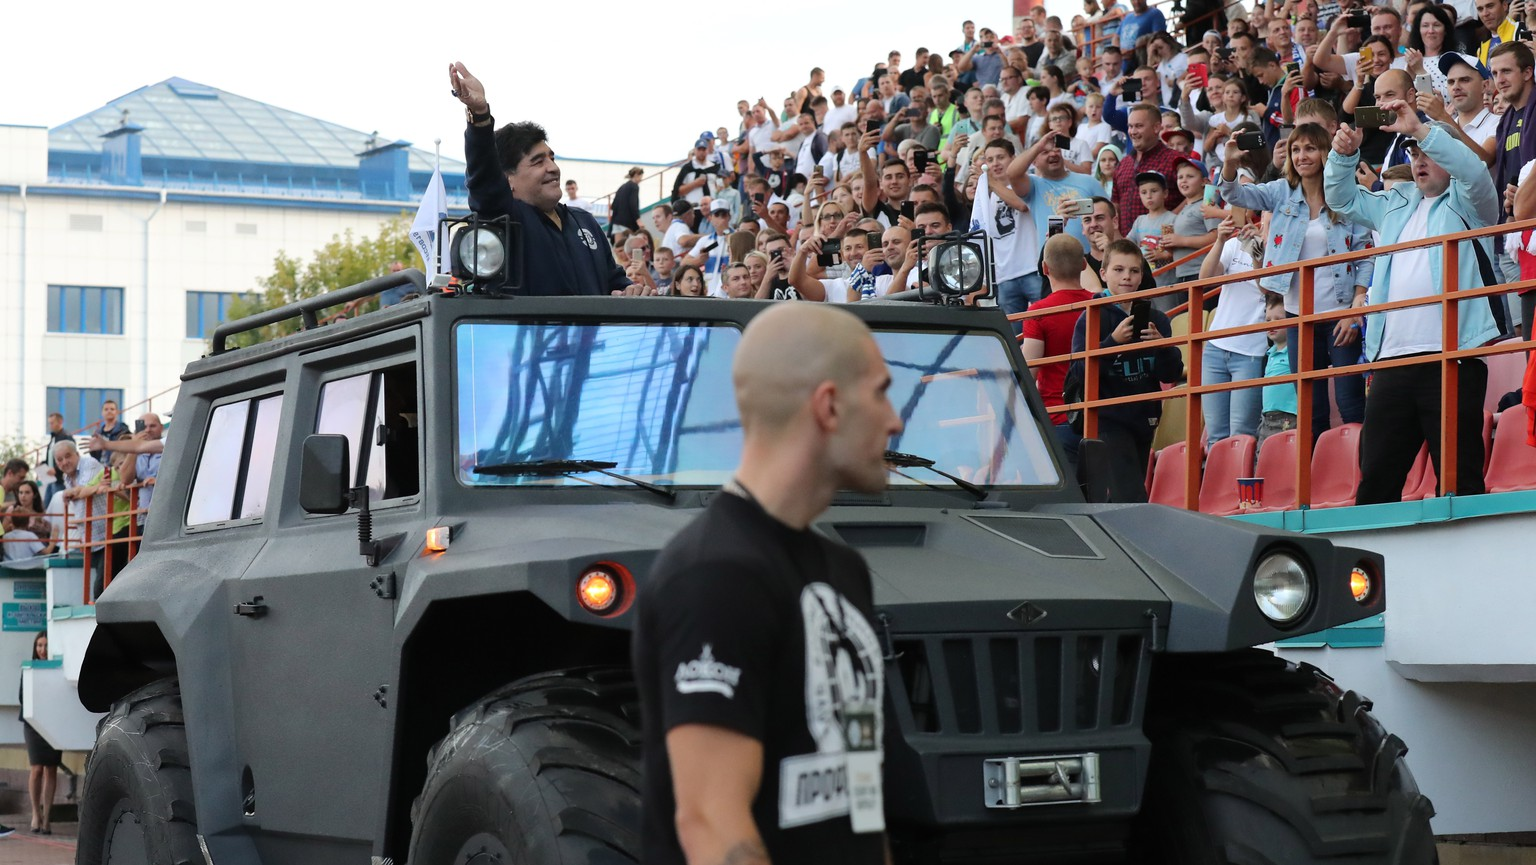 epa06893531 Former Argentinian soccer player Diego Maradona greets fans before the soccer match between FC Dinamo Brest and FC Shakhtyor at the central stadium in Brest, Belarus, 16 July 2018. Maradona has been appointed as chairman of Belarussian soccer club 'Dinamo Brest'.  EPA/TATYANA ZENKOVICH